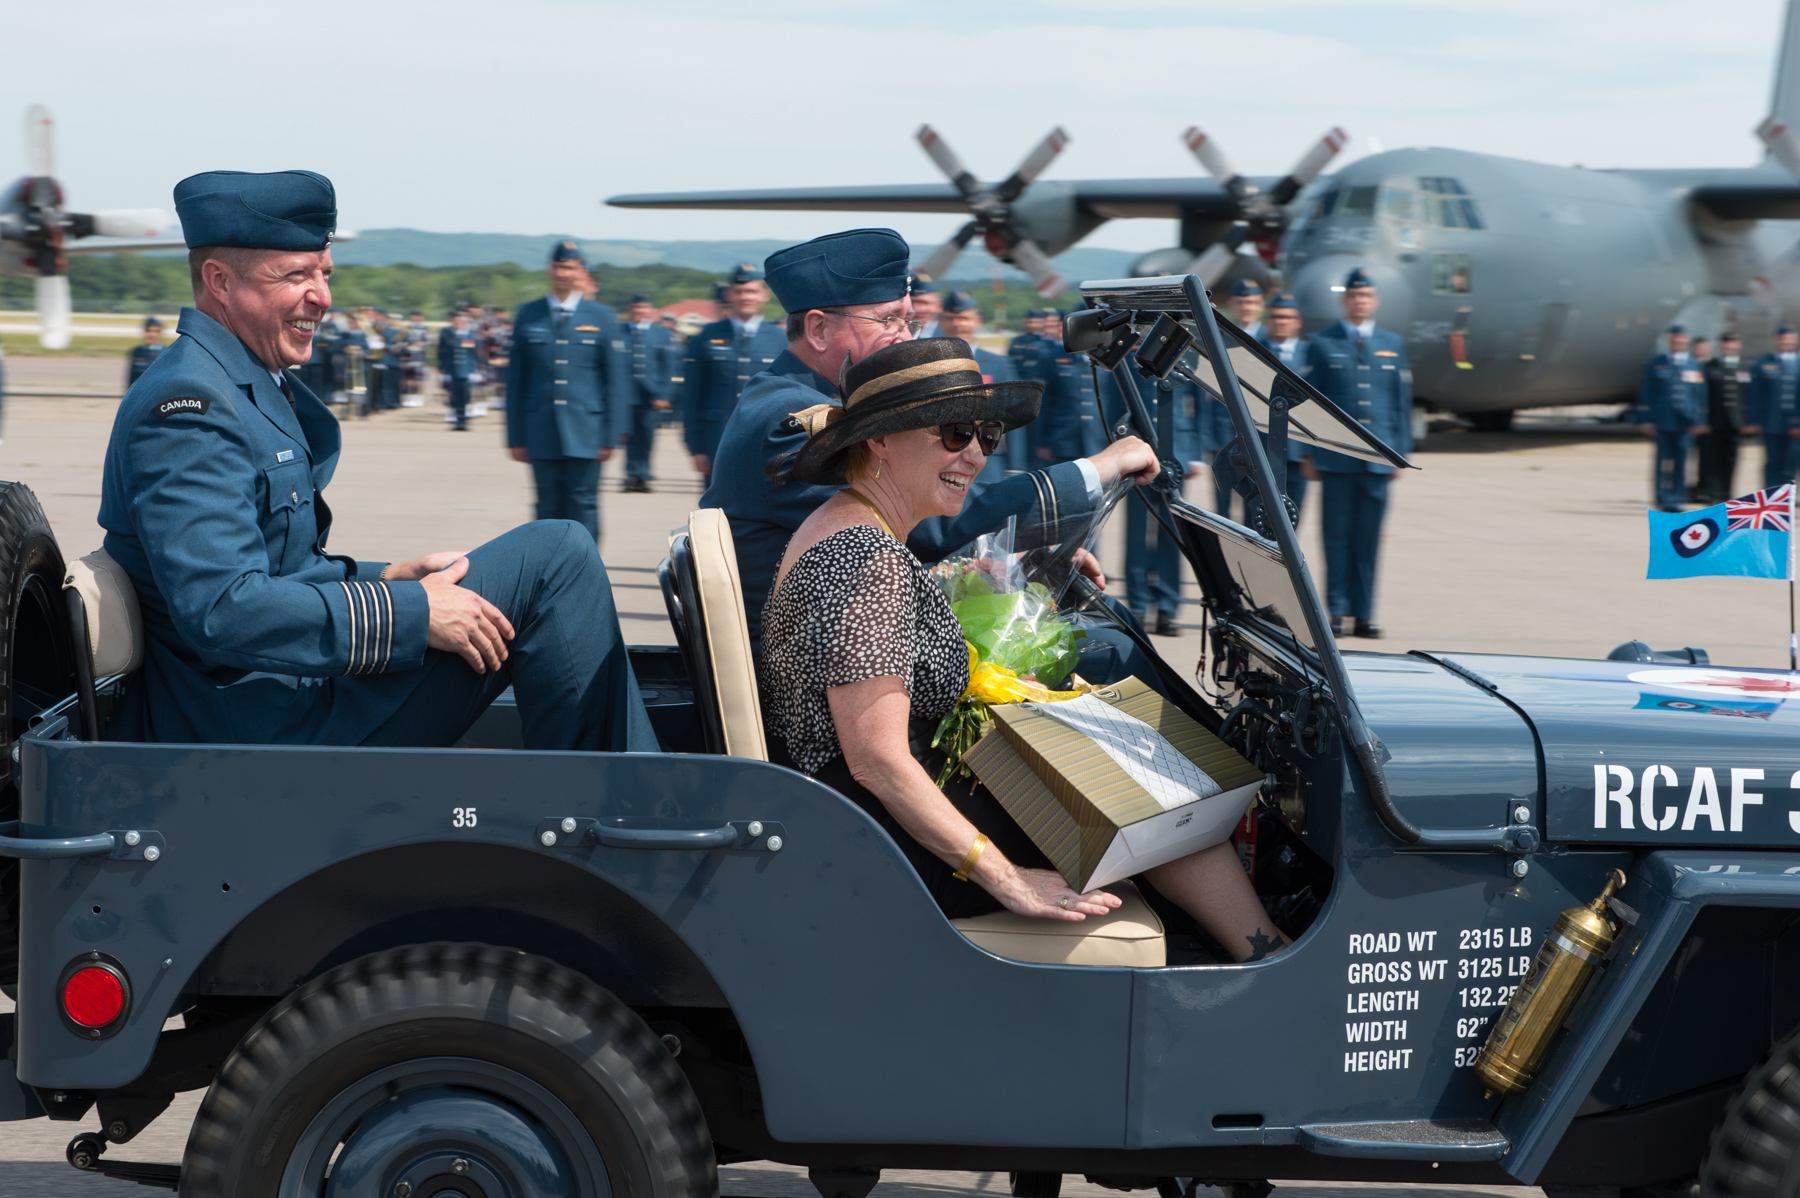 Former 14 Wing Greenwood commander Colonel Patrick Thauberger and his wife, Kathy, depart the parade square in a Royal Canadian Air Force heritage jeep after the July 20, 2017, change of command ceremony. PHOTO: Corporal Dan Salisbury, GD04-2017-0453-040